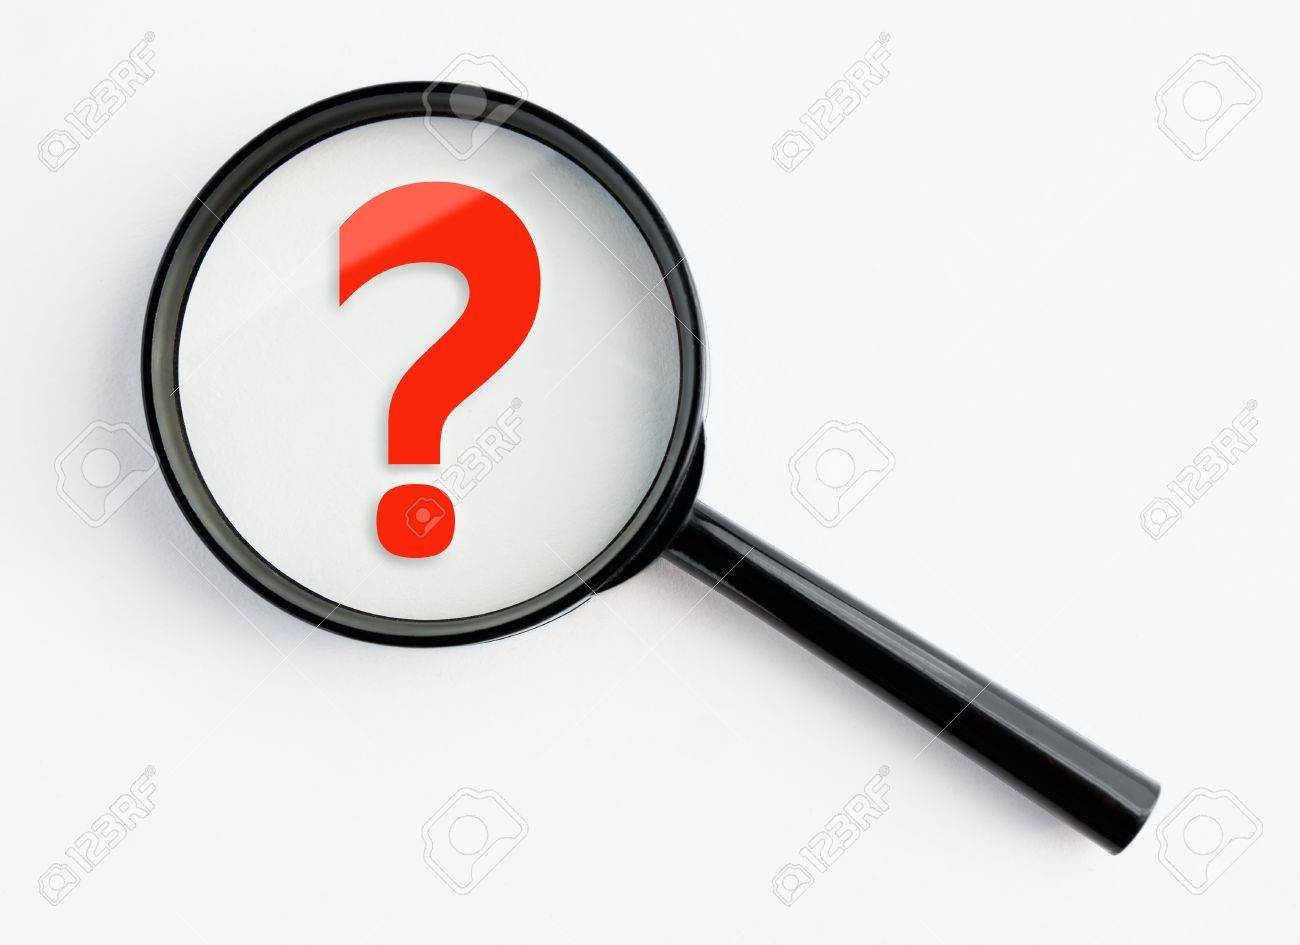 3d person with magnifying glass and question mark stock images image - Analyzing Question Mark Question Mark Under A Magnifying Glass With Isolated Background